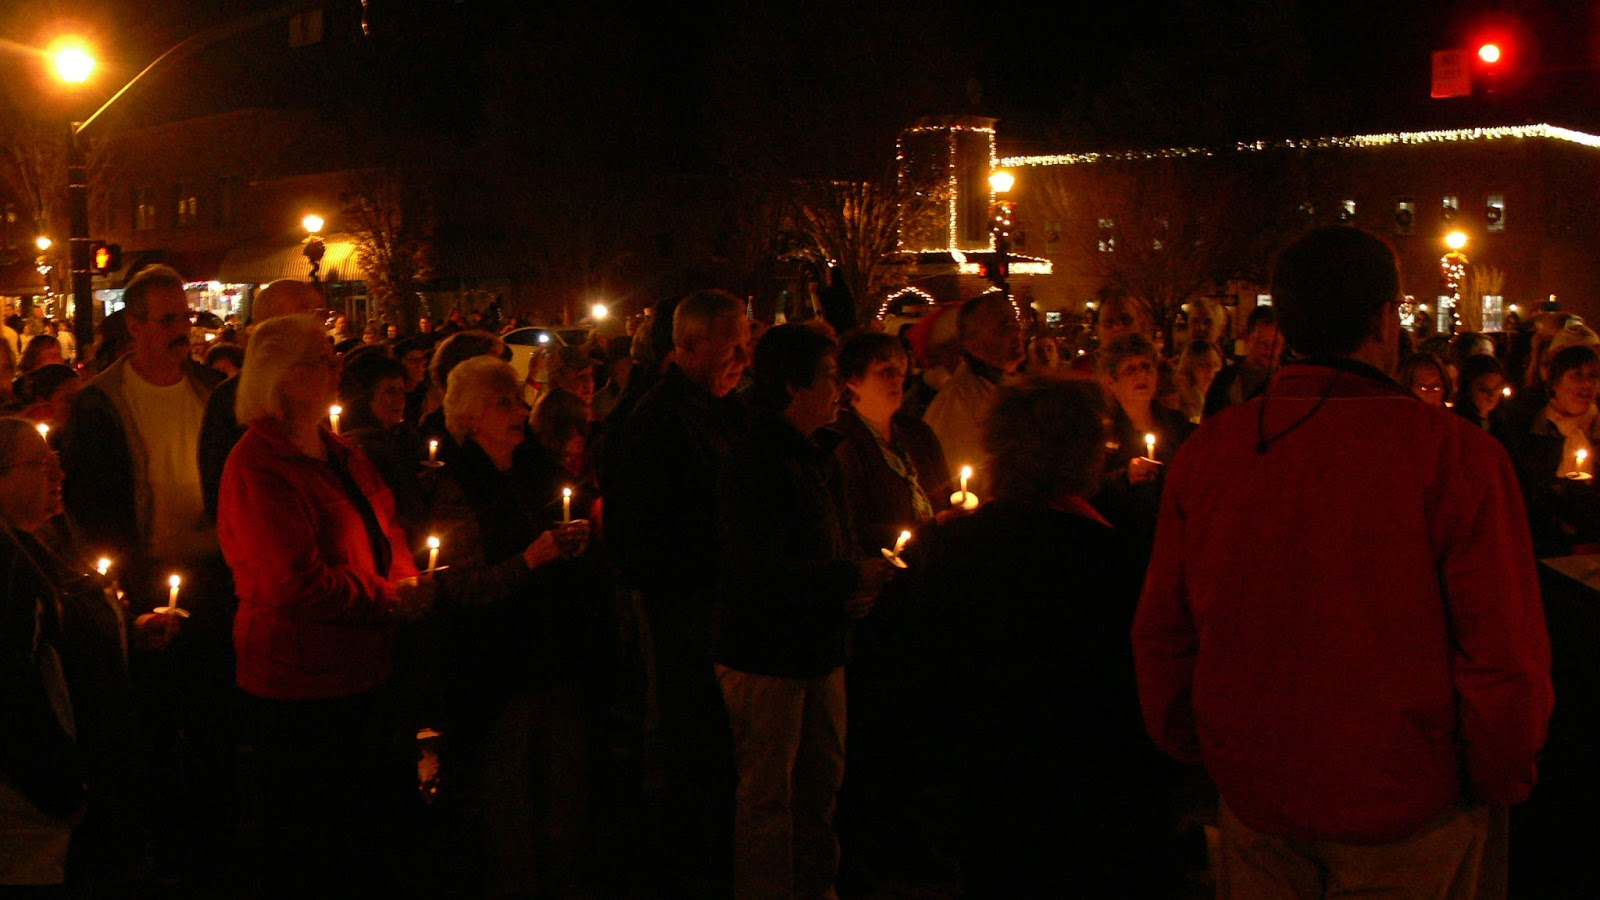 Candlelight Service in Franklin